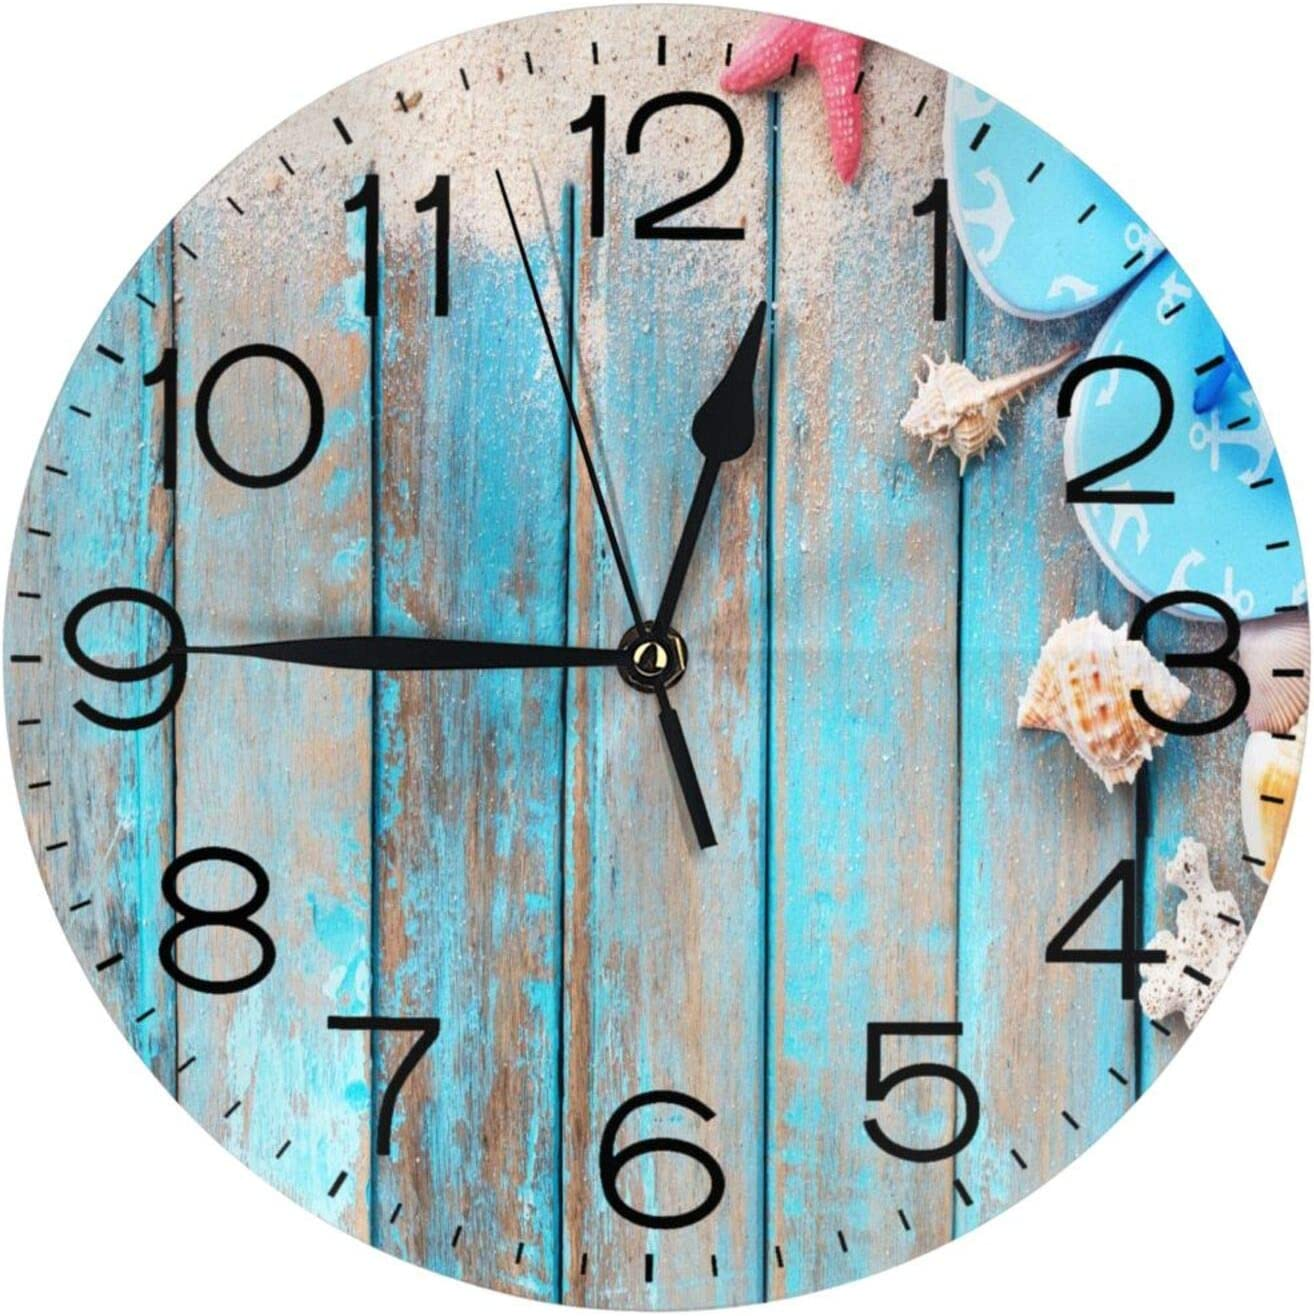 """N/W Conch On The Beach Board Wall Clock 10"""" Round,- Battery Operated Wall Clock Clocks for Home Decor Living Room Kitchen Bedroom Office School"""